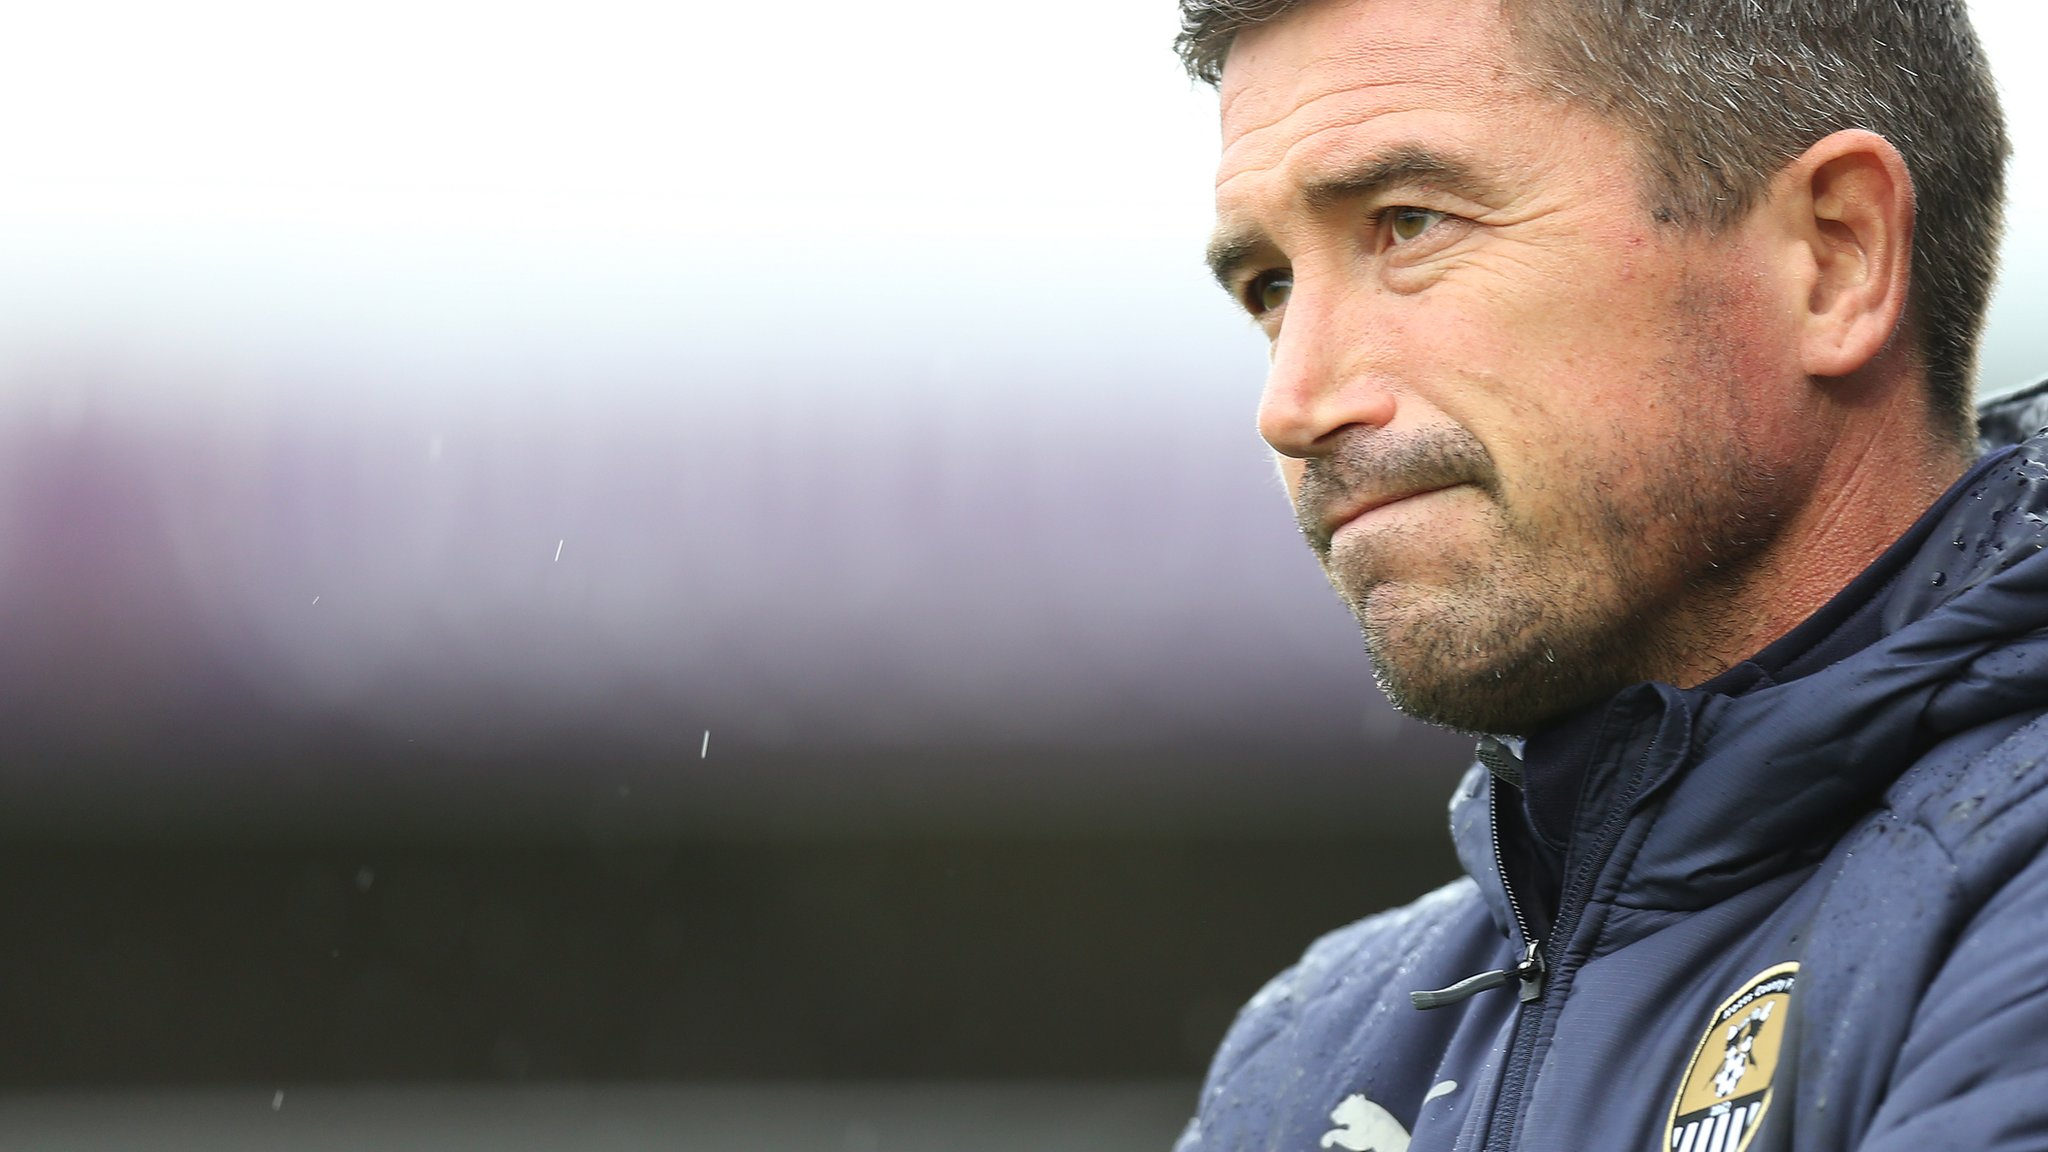 Notts County boss Kewell sacked after 10 weeks